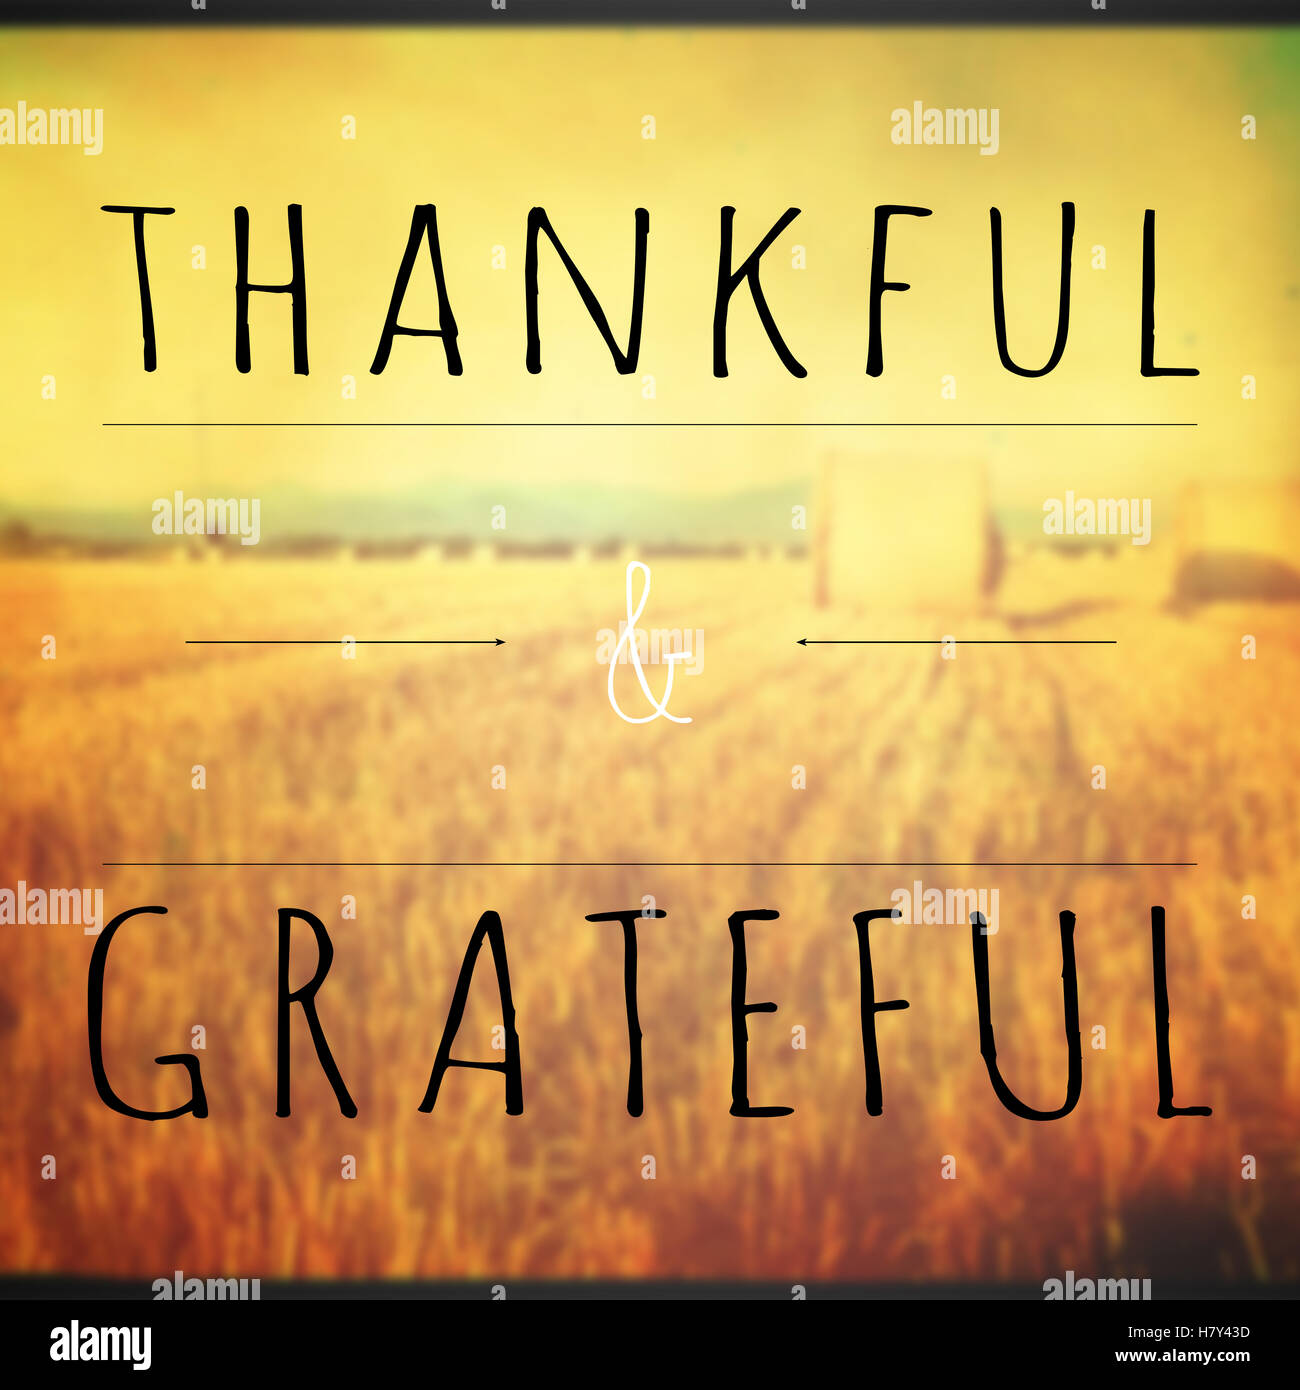 Motivational background quote with thankful and grateful text - Stock Image